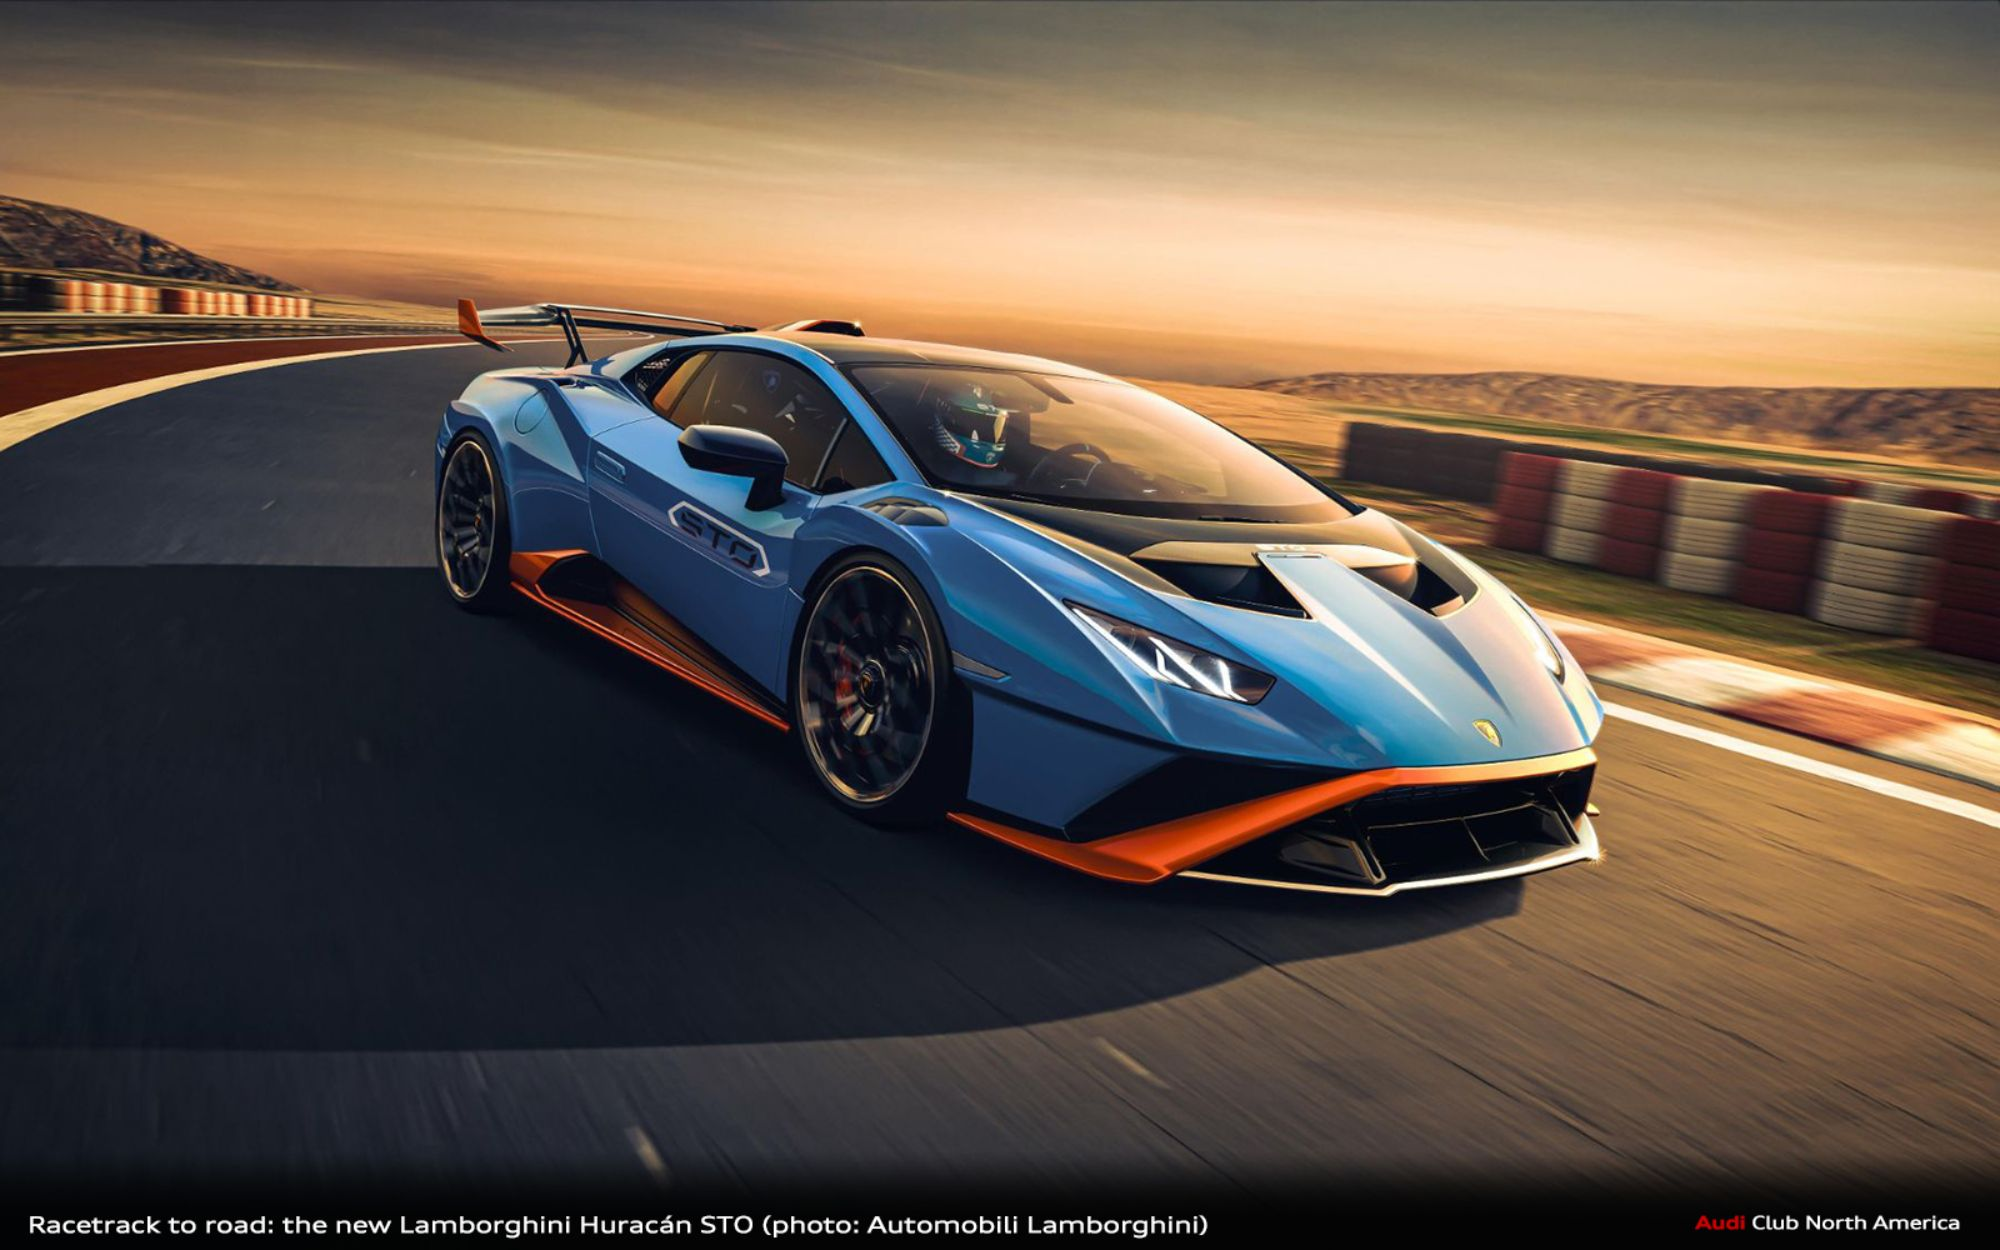 Racetrack to Road: The New Lamborghini Huracán STO